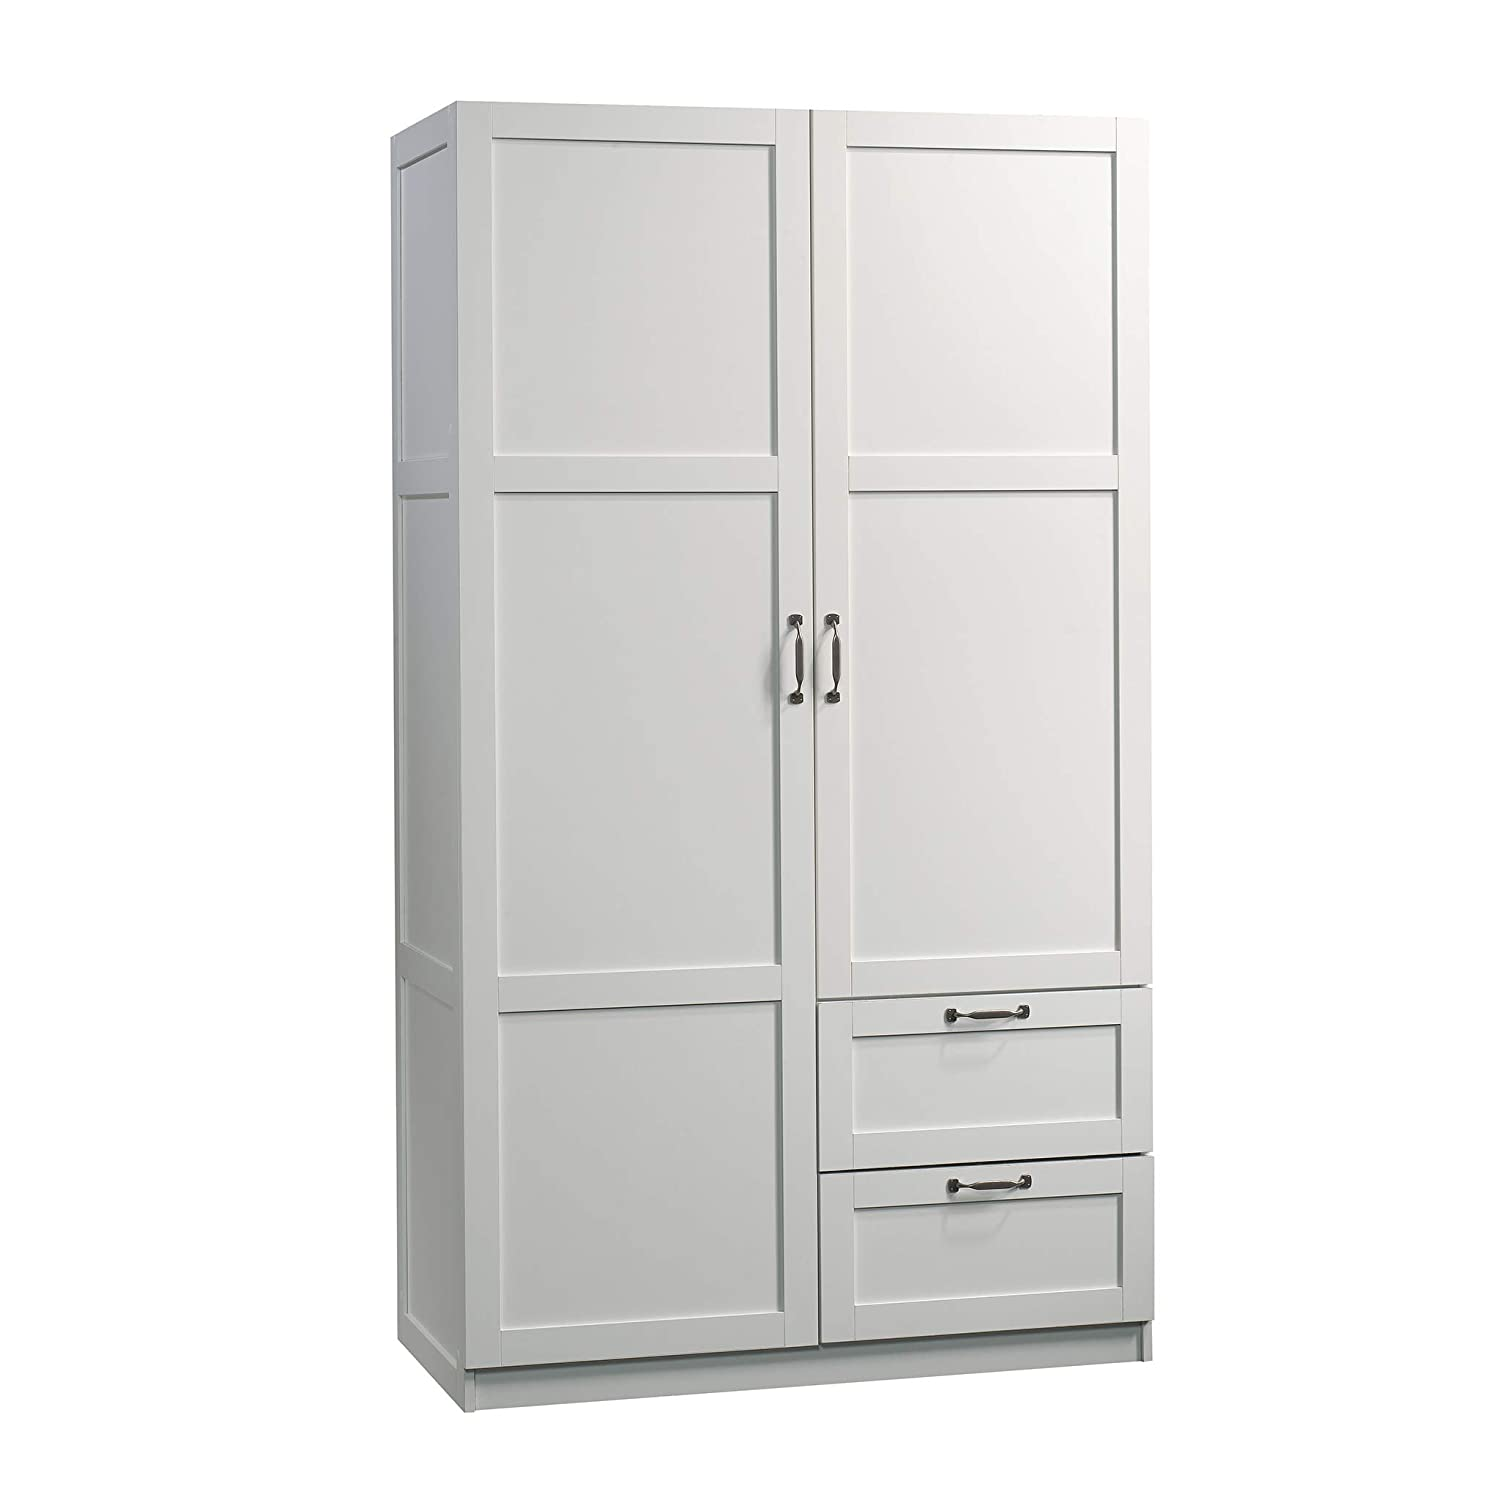 "Sauder 420495 Storage Cabinet, L: 40.00"" x W: 19.45"" x H: 71.10"",White finish"